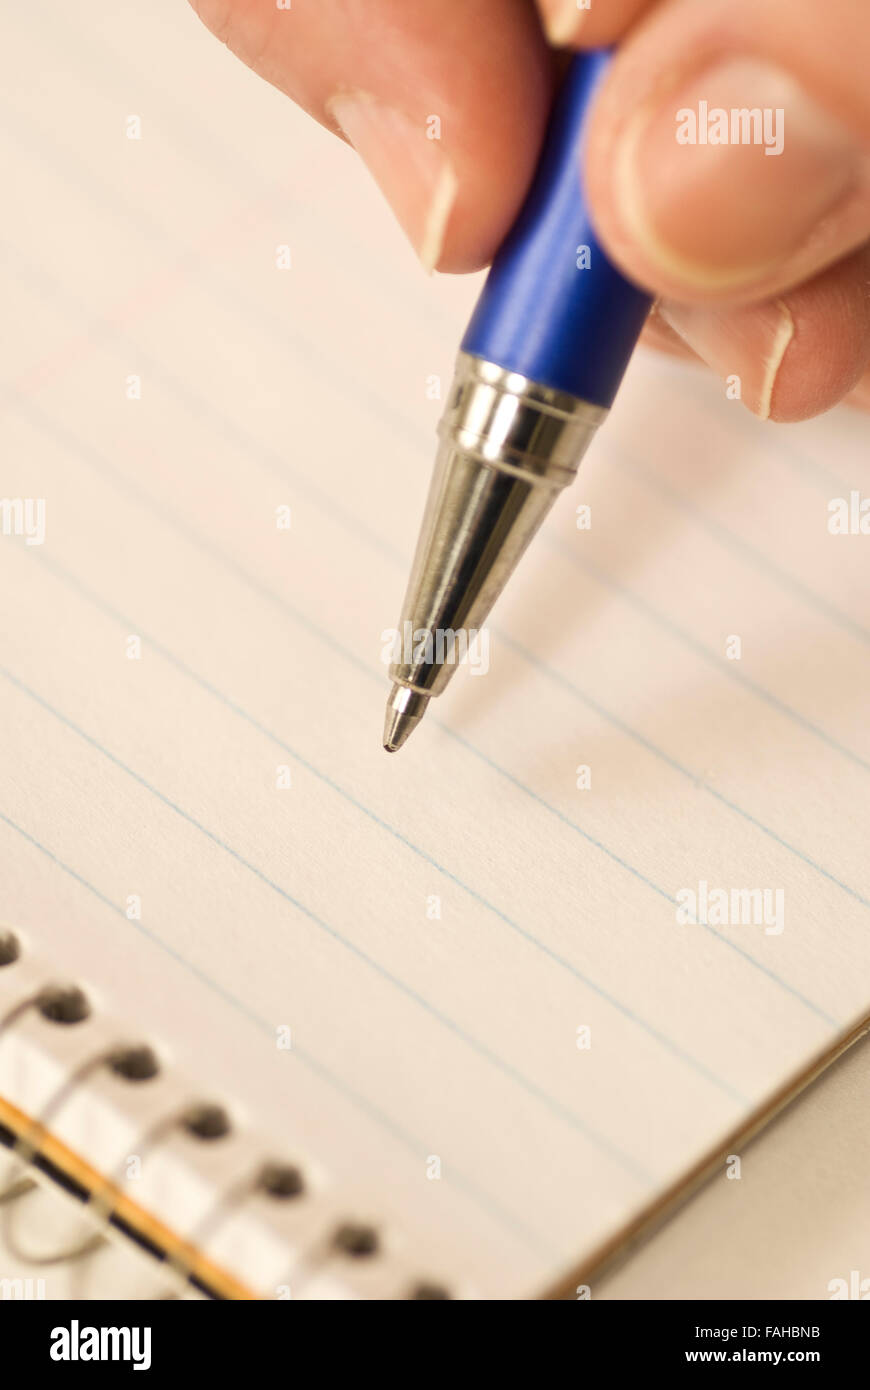 Hand Writing With Pen - Stock Image